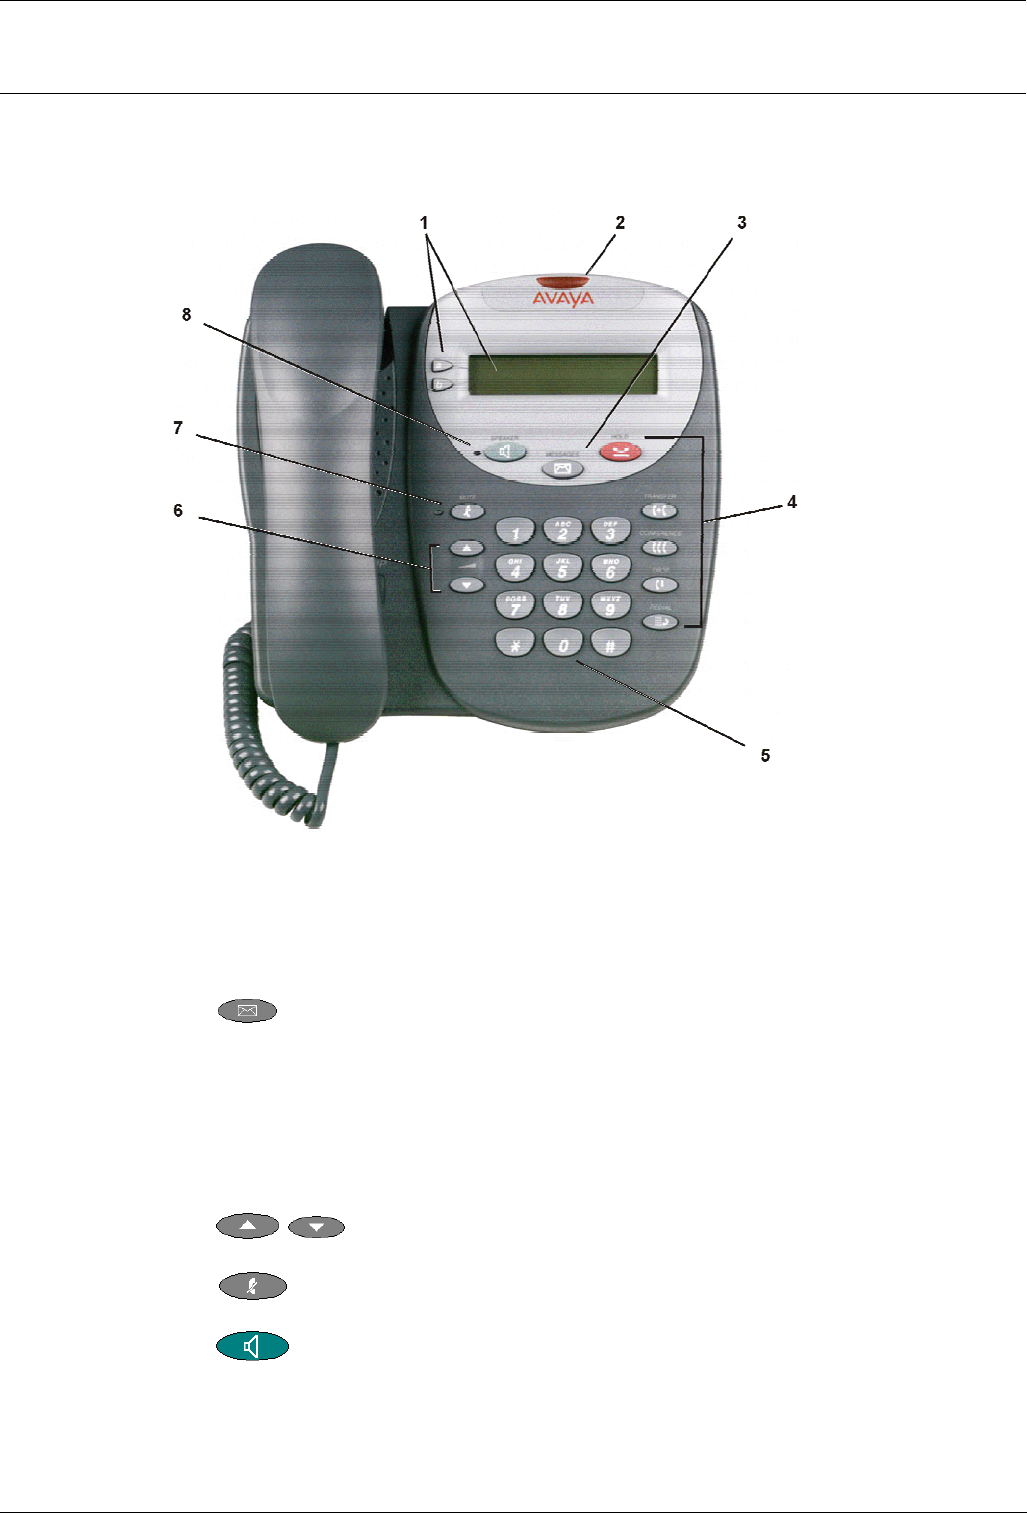 The 4602 Telephone Overview of the 4602 - Page 3